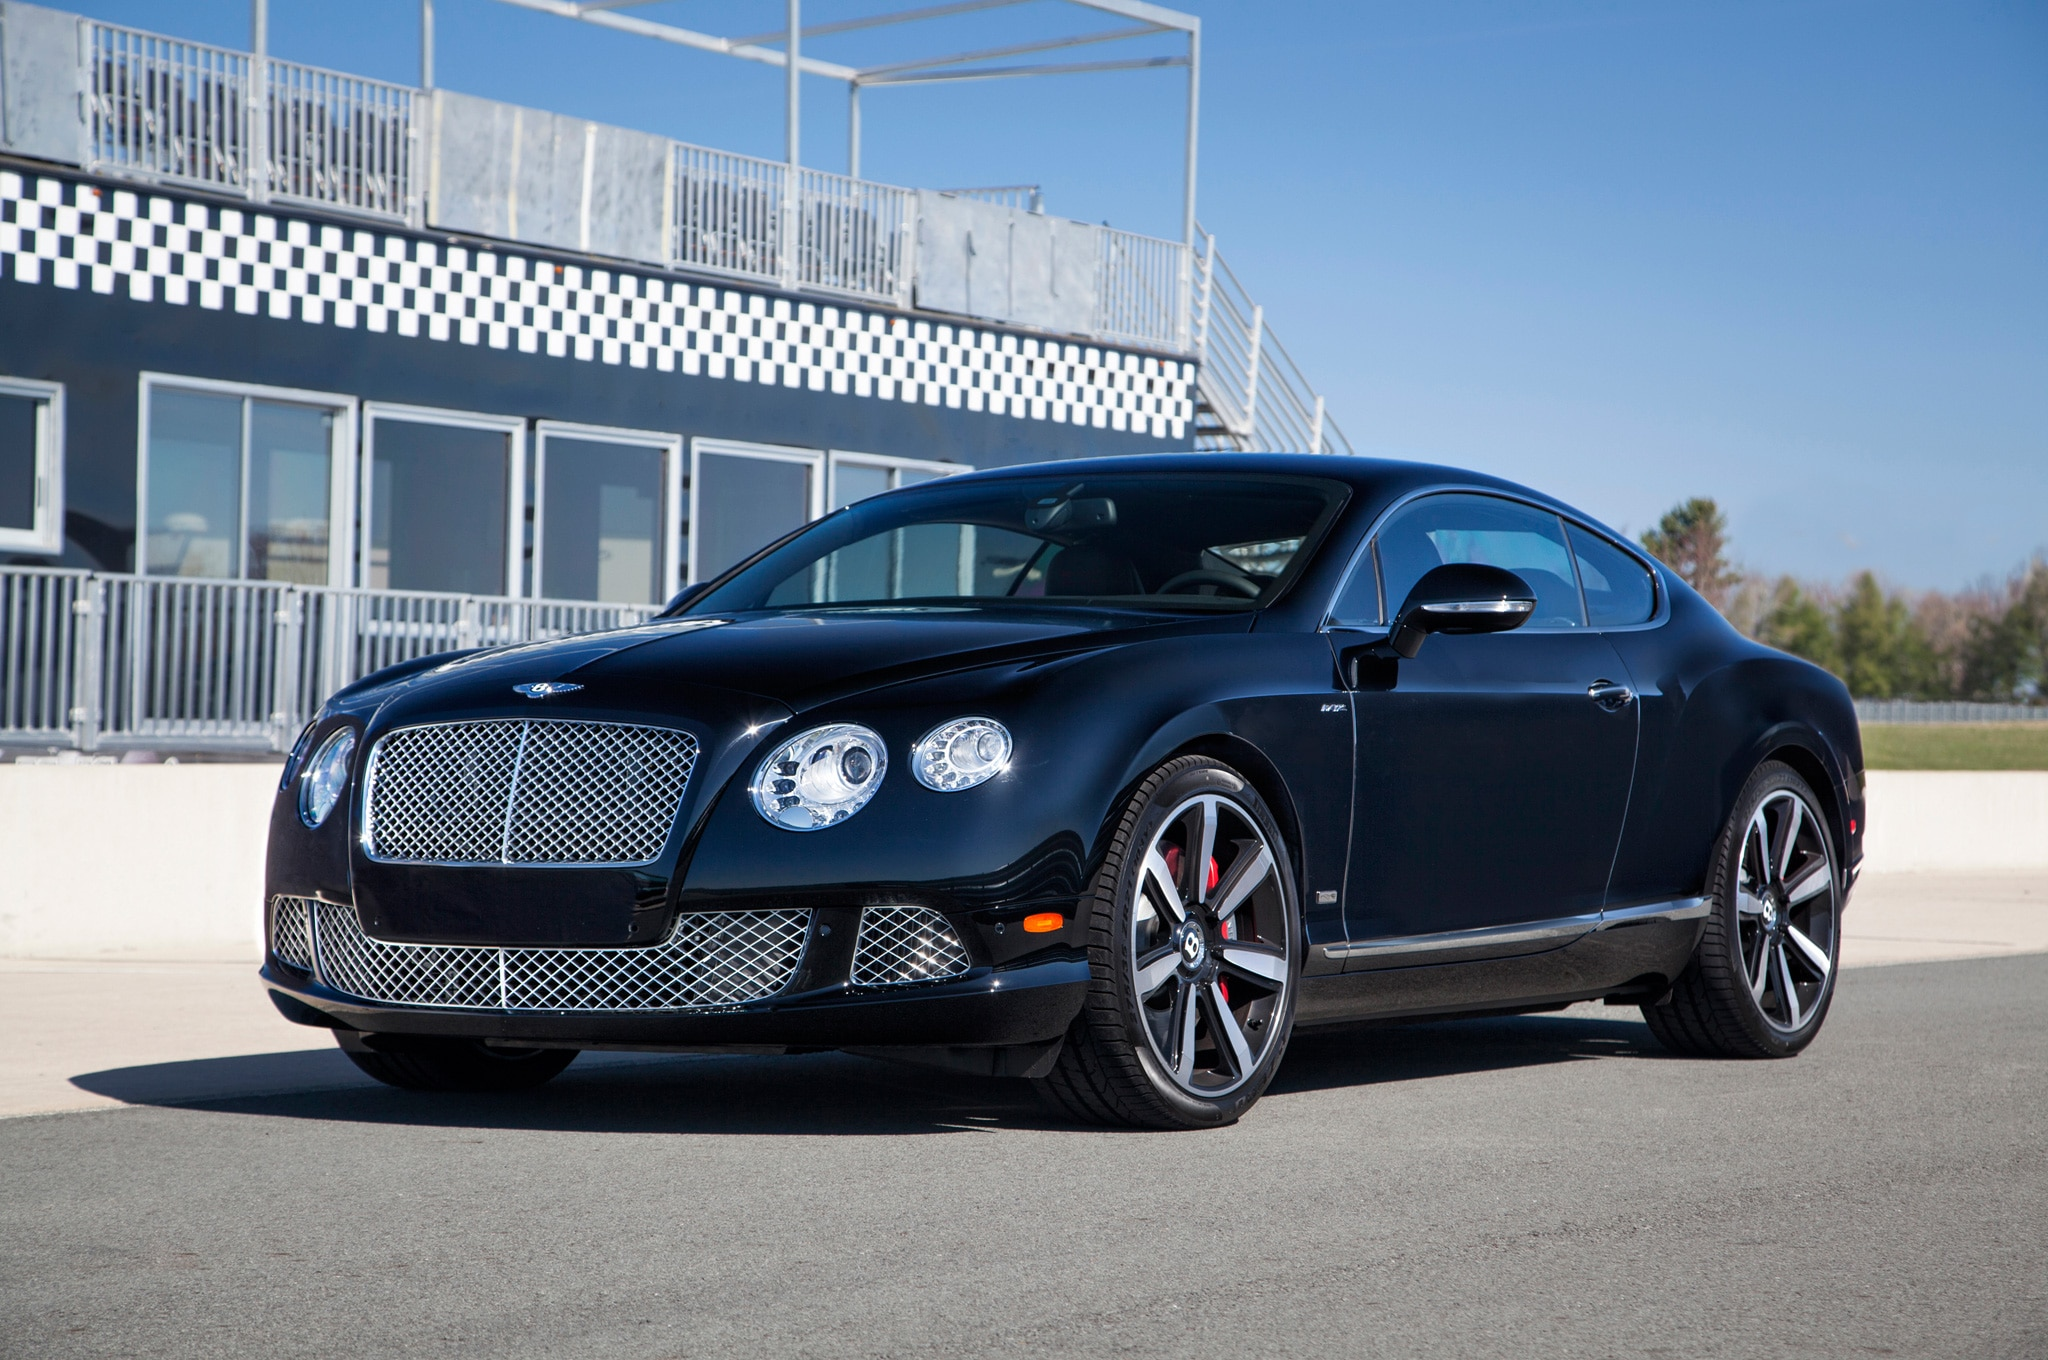 Bentley continental gt w12 review autoevolution - 2013 Bentley Continental Gtc V8 Editors Notebook Automobile 2013 Bentley Continental Gt W12 Vanachro Images